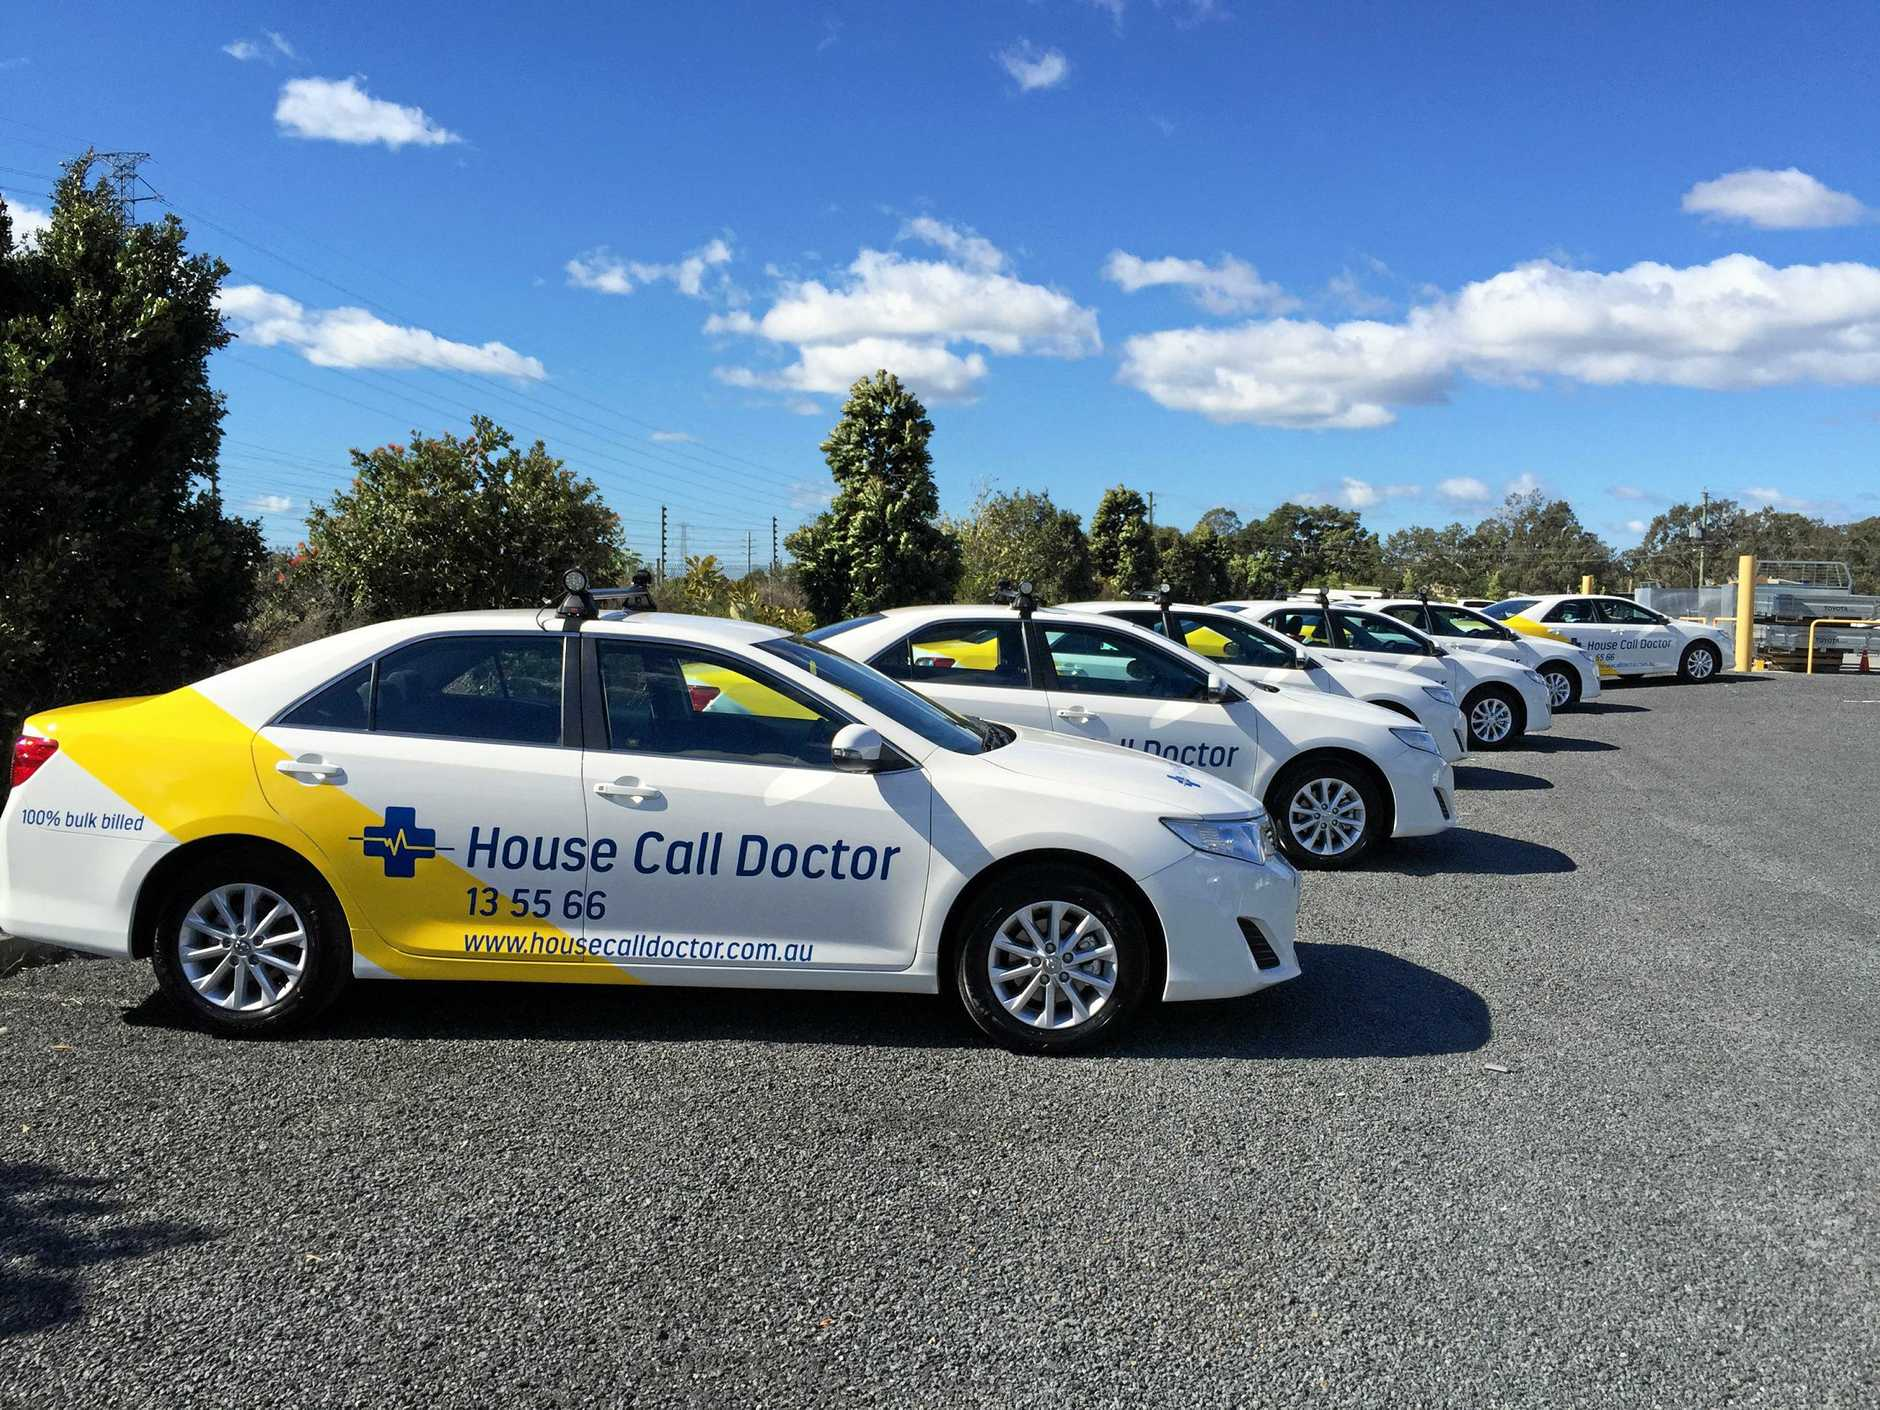 House Call Doctor cars.